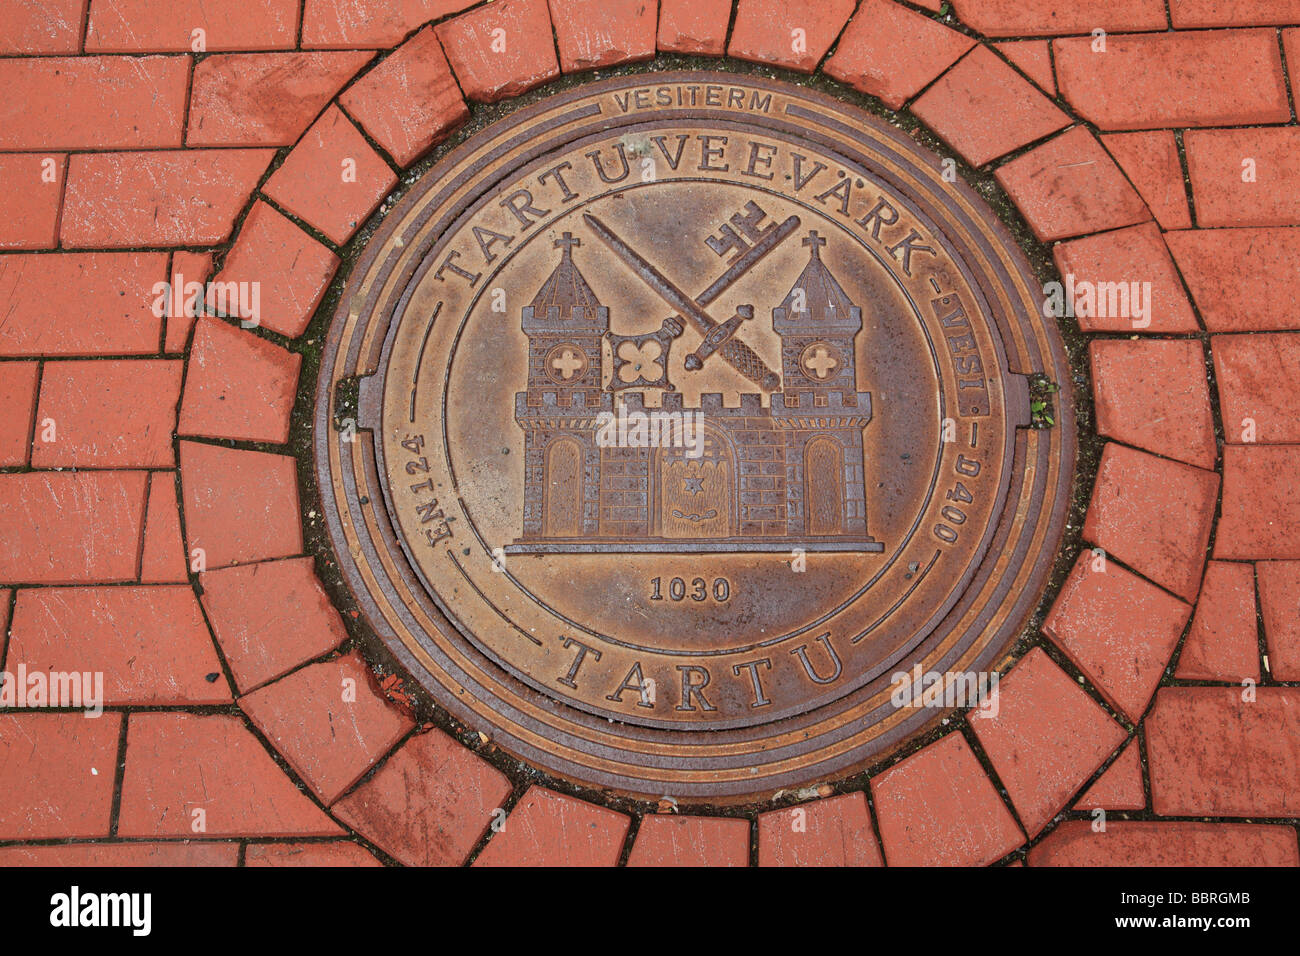 manhole cover on the street in the city of Tartu, Estonia, Baltic State, Eastern Europe.  Photo by Willy Matheisl - Stock Image